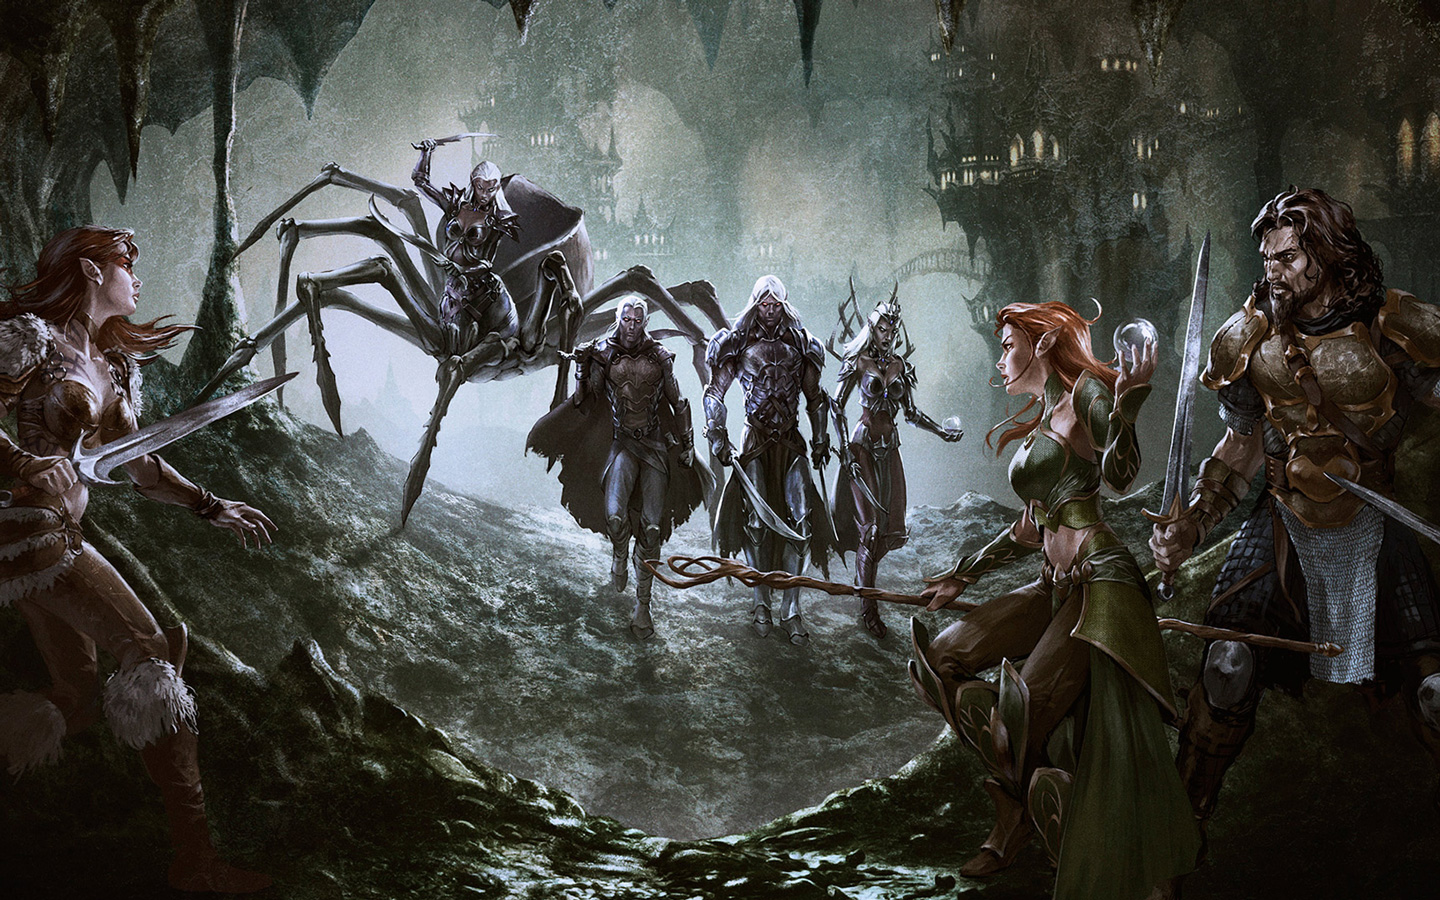 Free Dungeons & Dragons Online Wallpaper in 1440x900